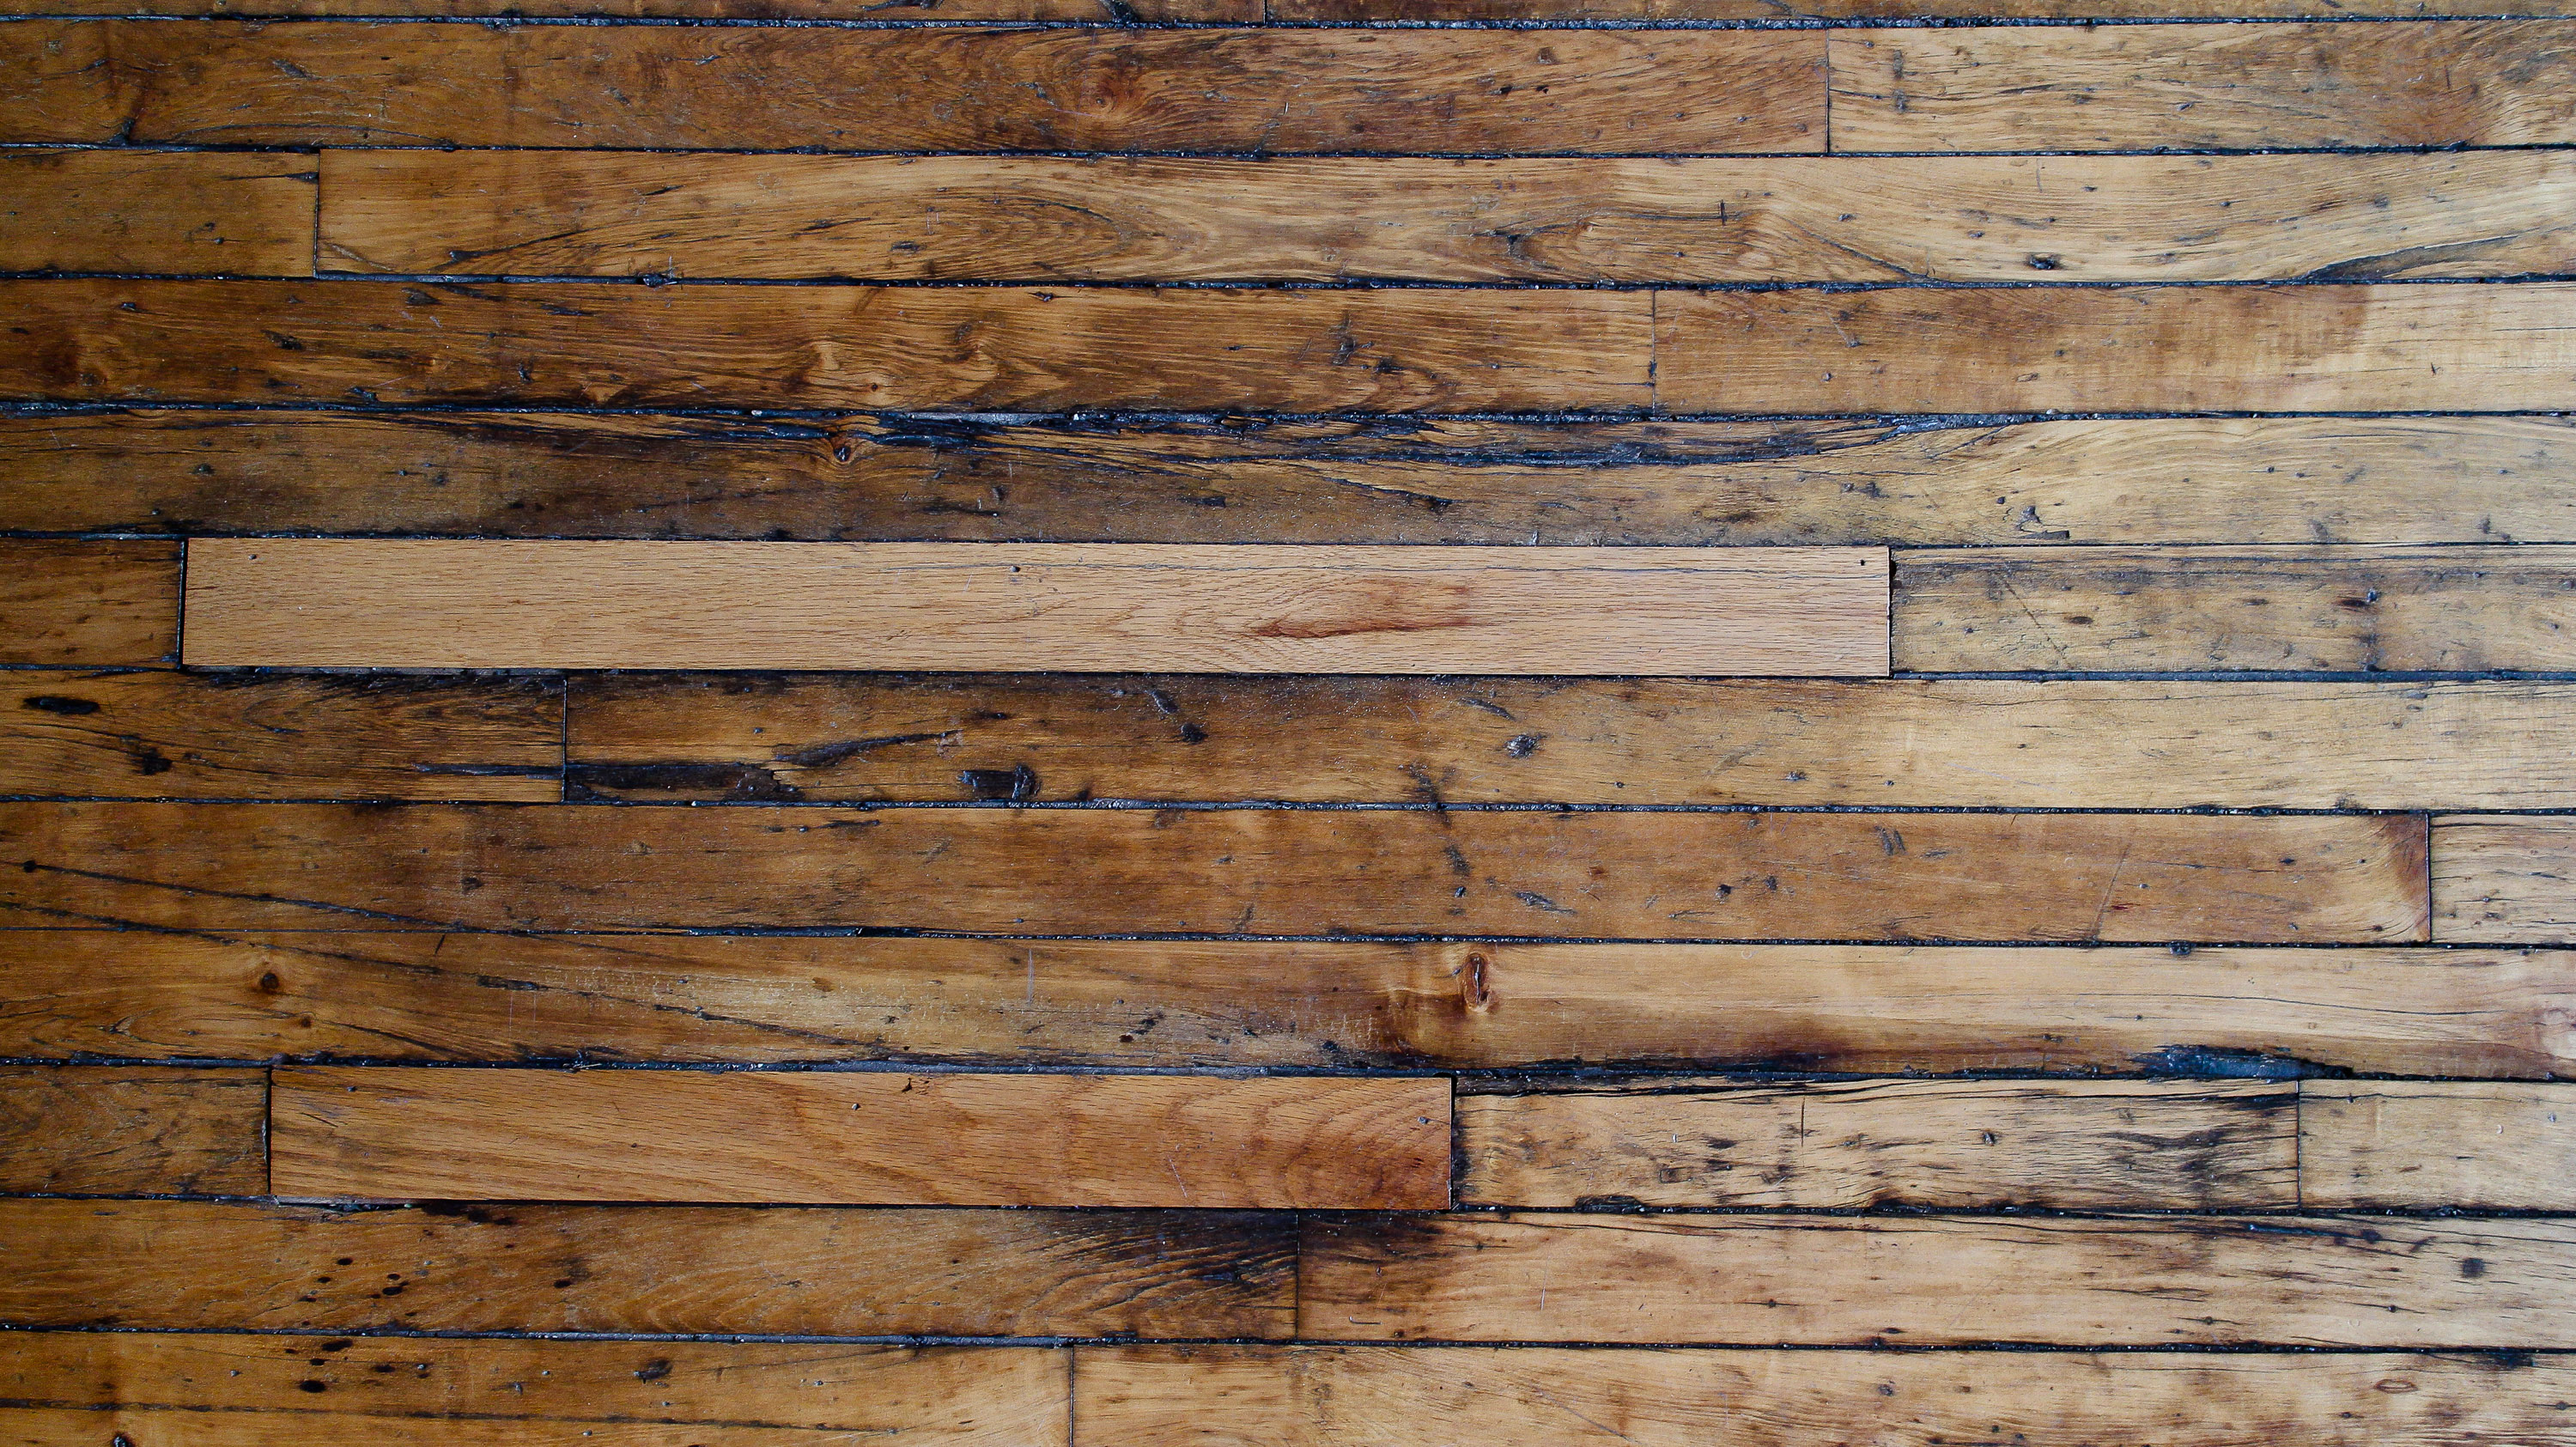 Close-up of Wood flooring